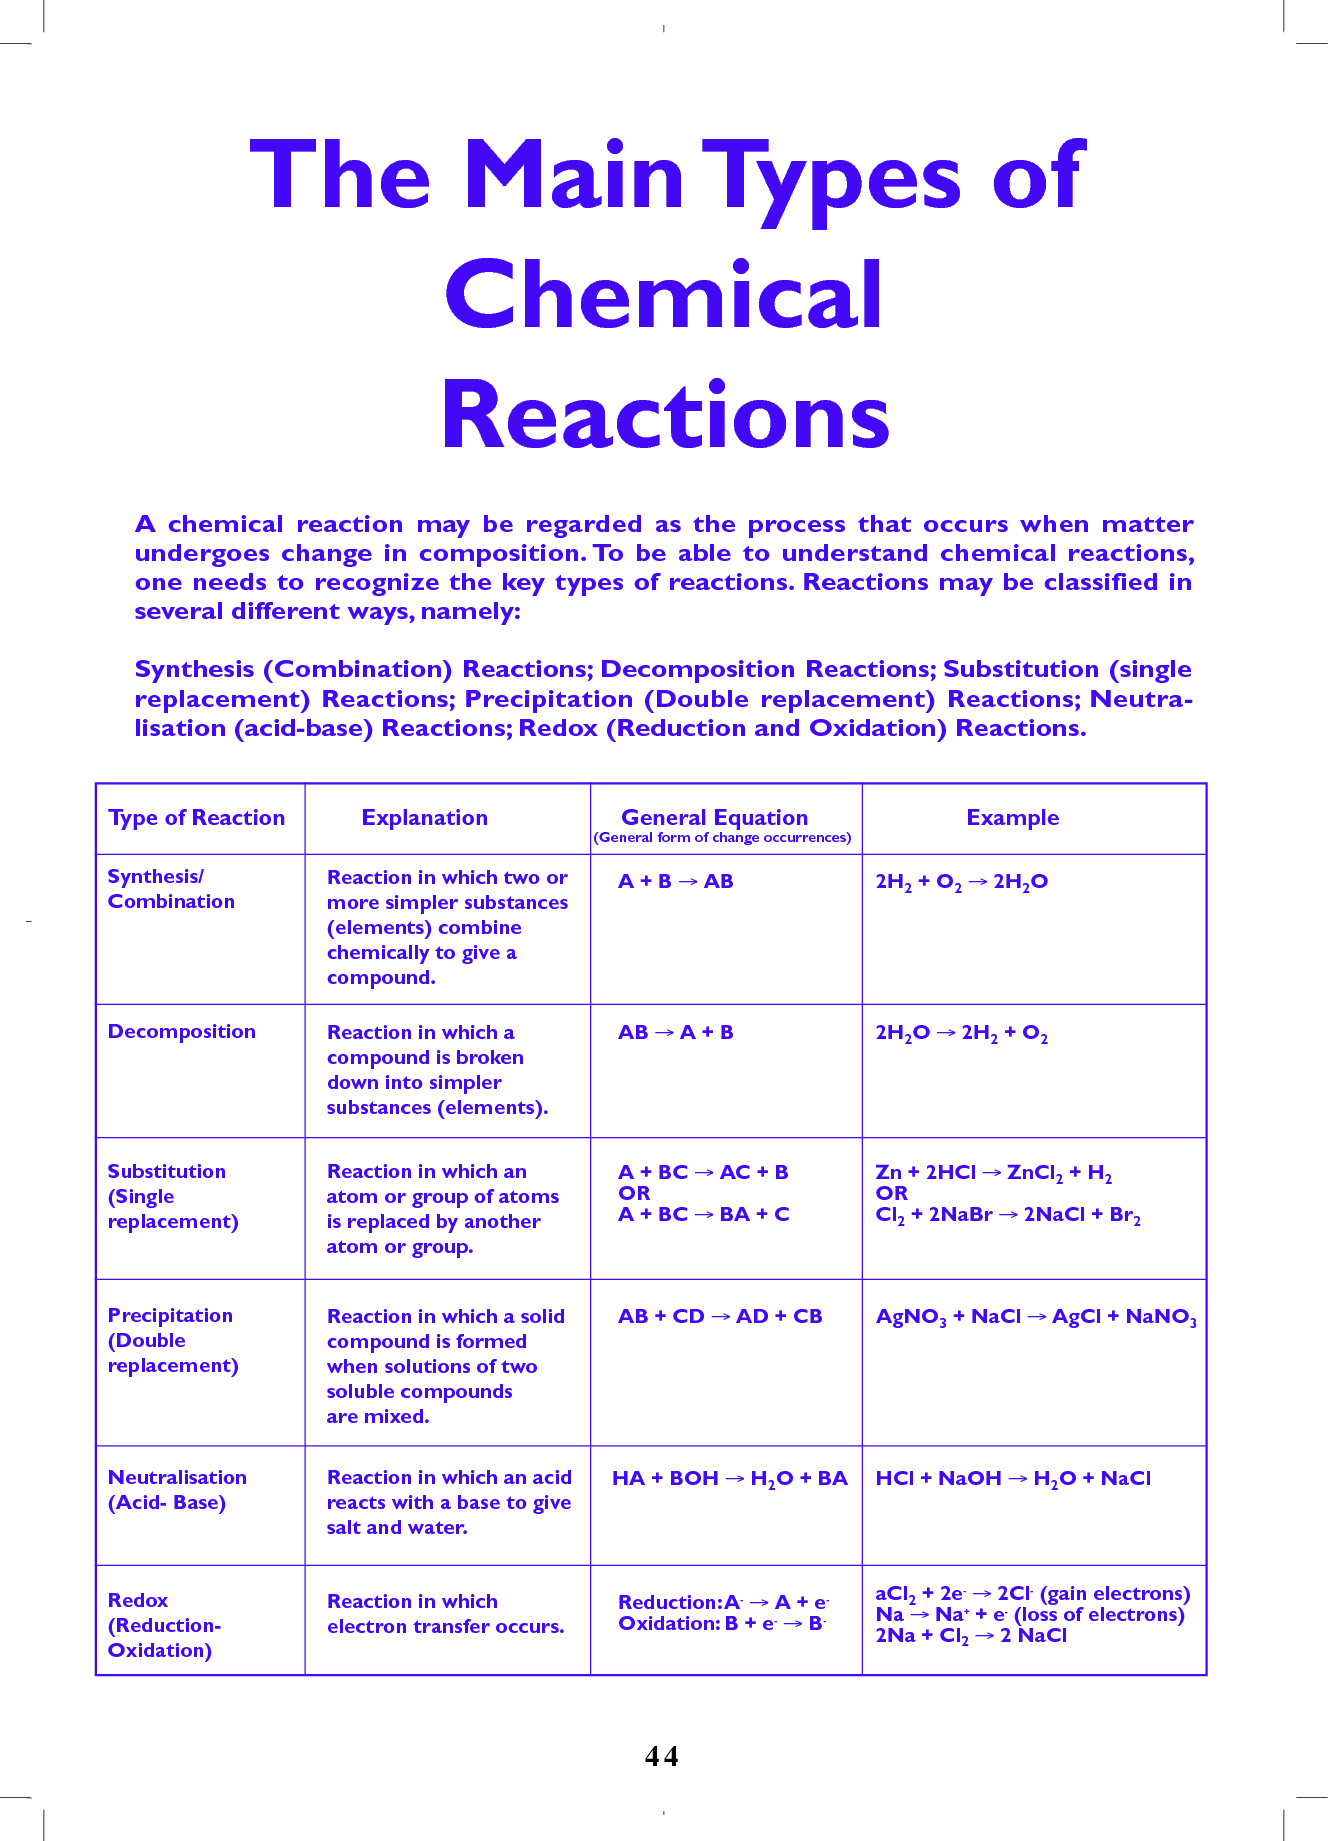 types of chemical reactions the main types of chemical reactions education chemistry. Black Bedroom Furniture Sets. Home Design Ideas